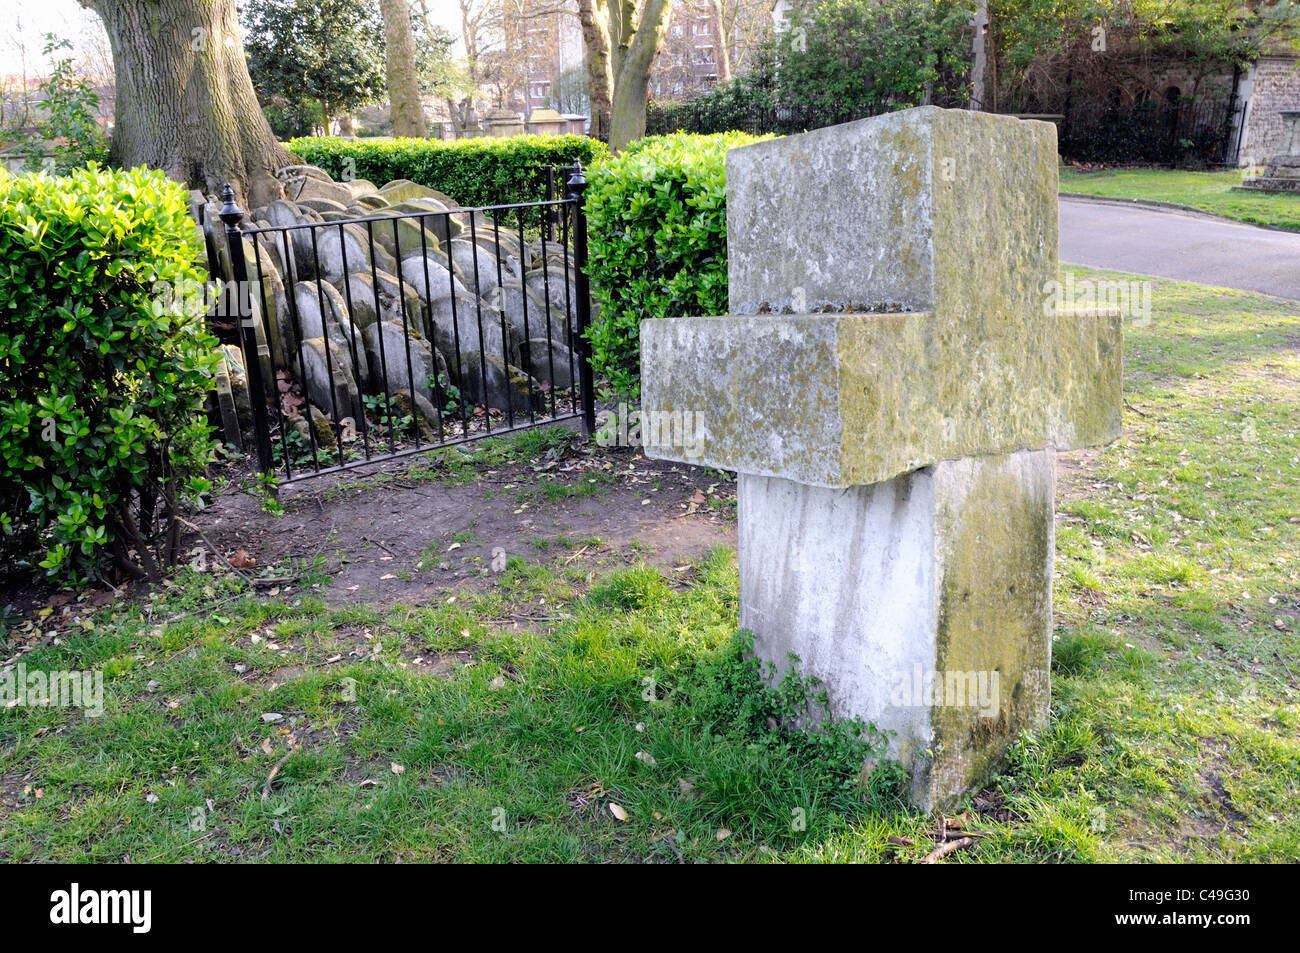 Headstones or gravestones around The Hardy tree with impressive cross shaped stone in forground St. Pancras Churchyard, - Stock Image